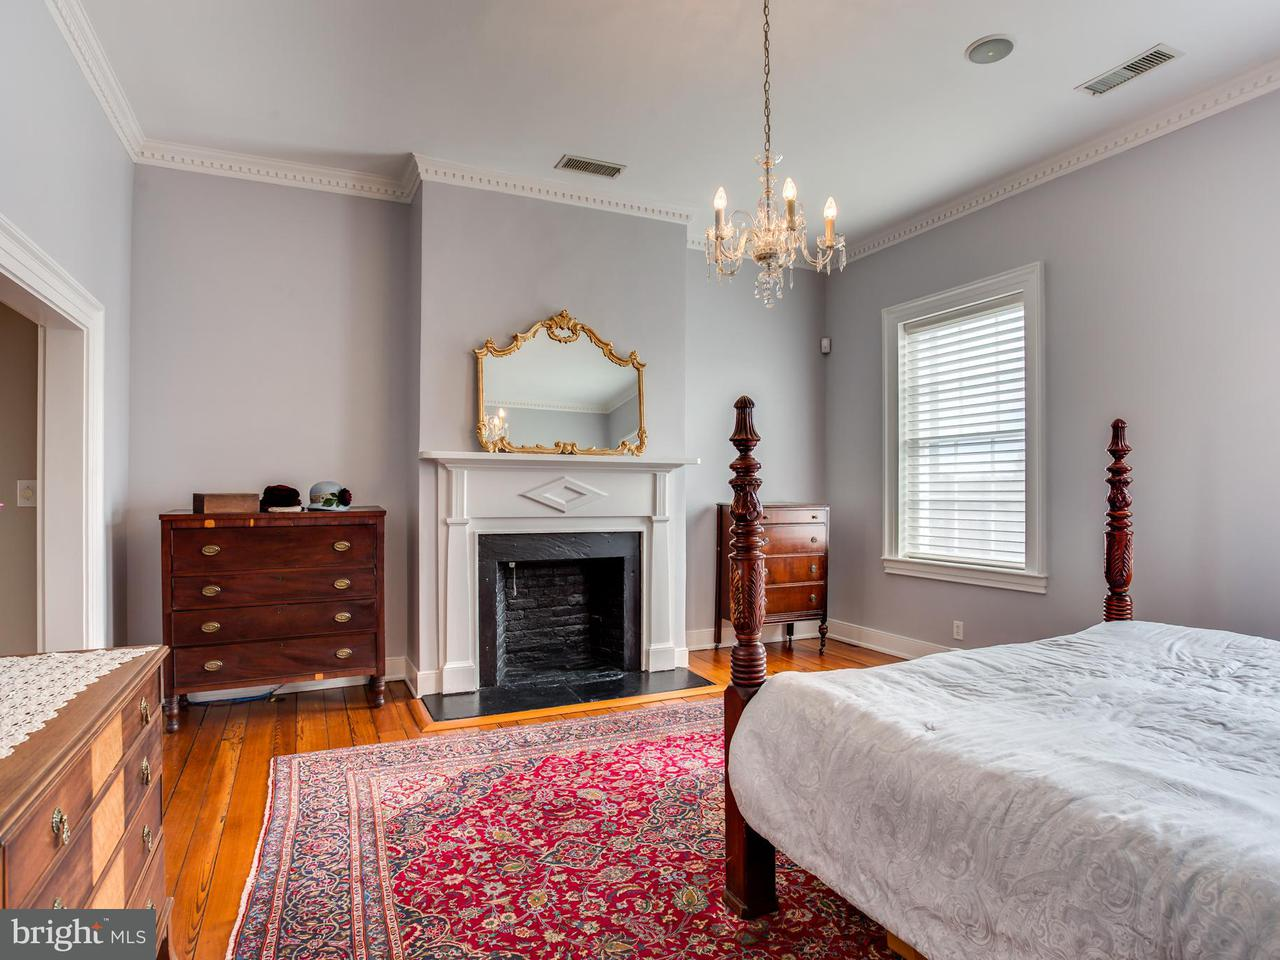 Additional photo for property listing at 406 Hanover Street 406 Hanover Street Fredericksburg, バージニア 22401 アメリカ合衆国